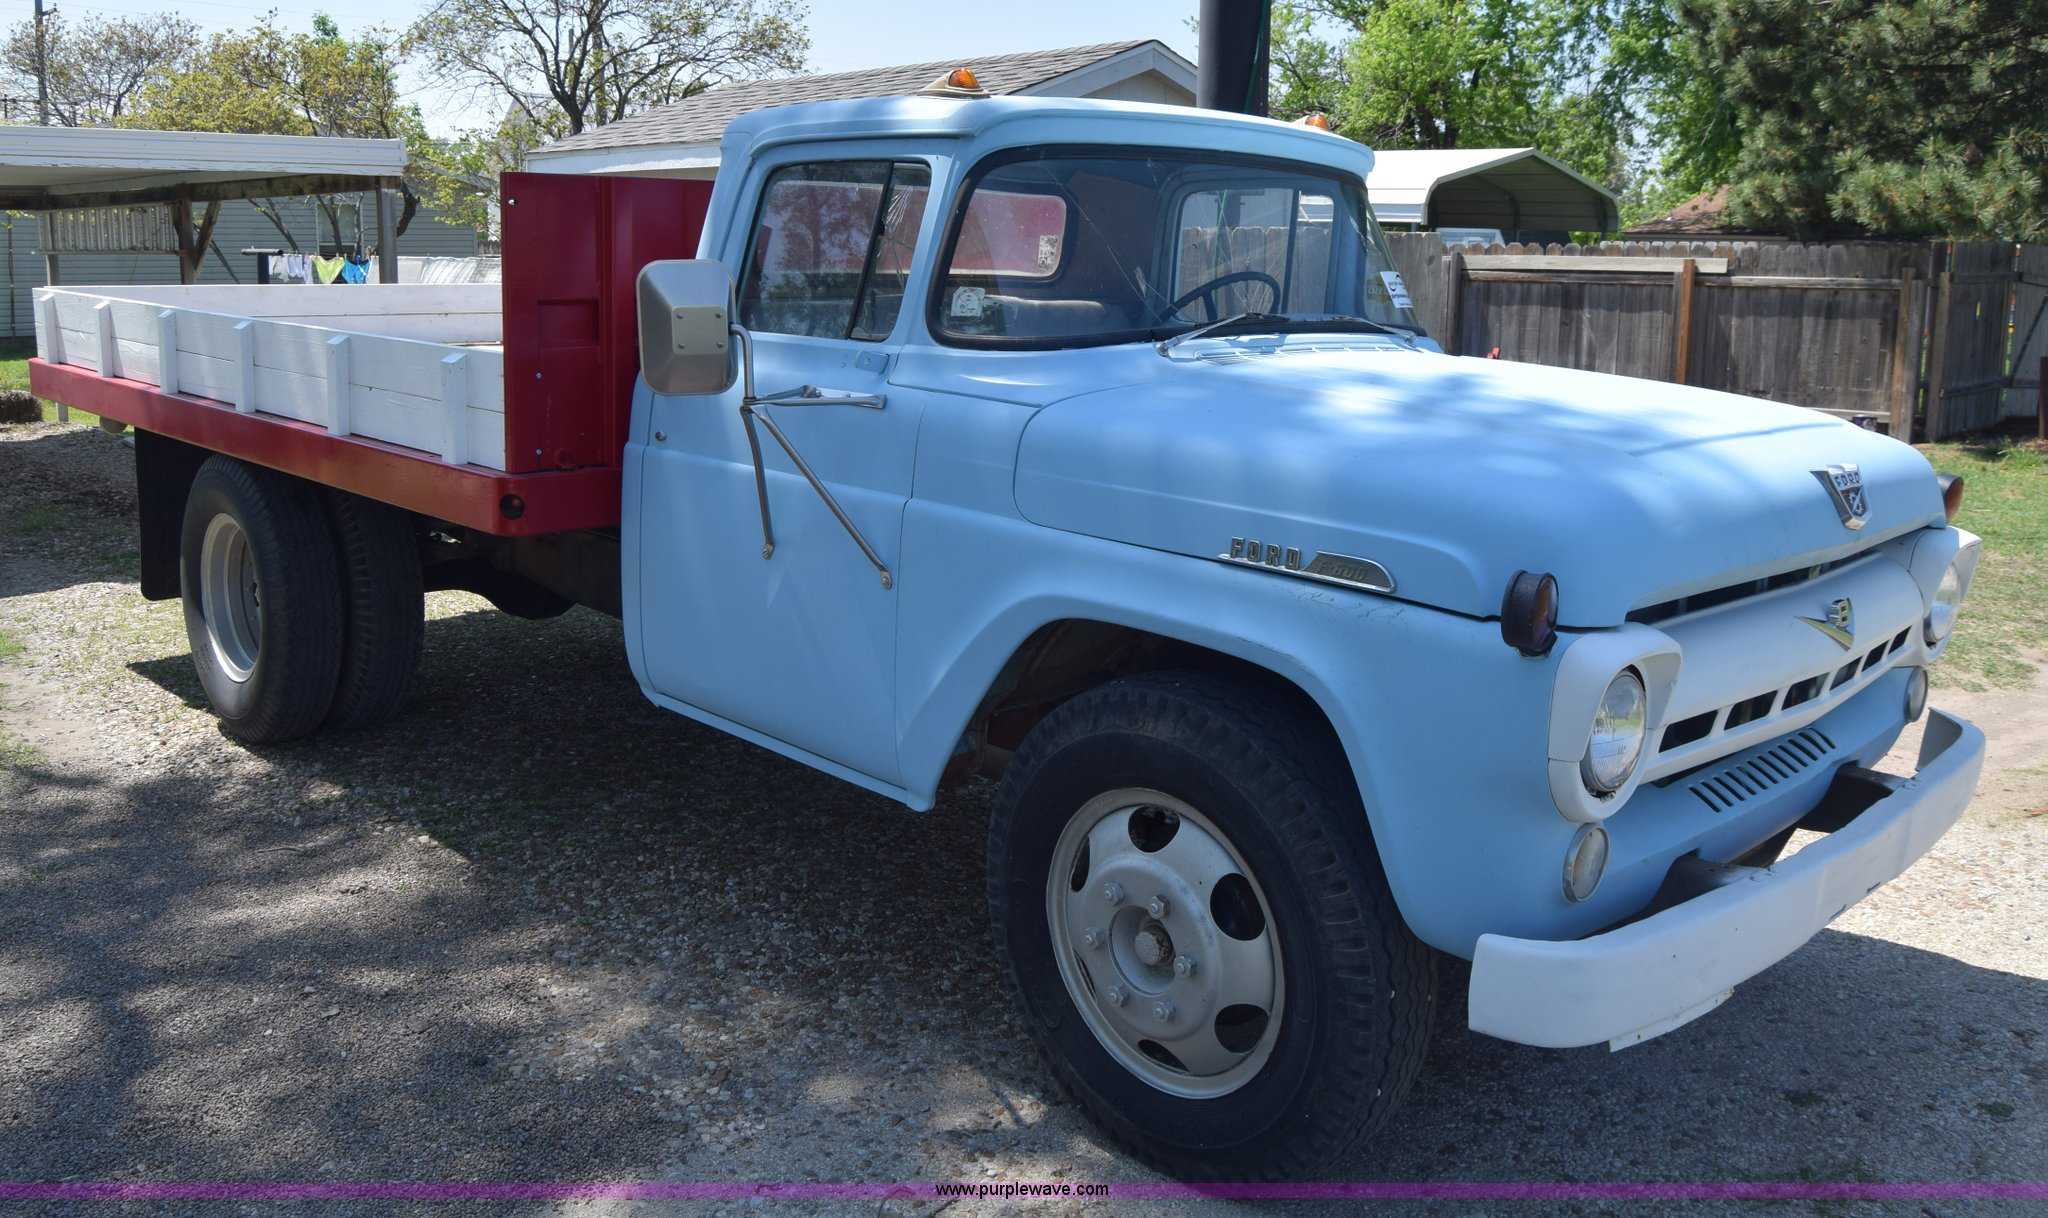 1957 ford f600 flatbed truck full size in new window